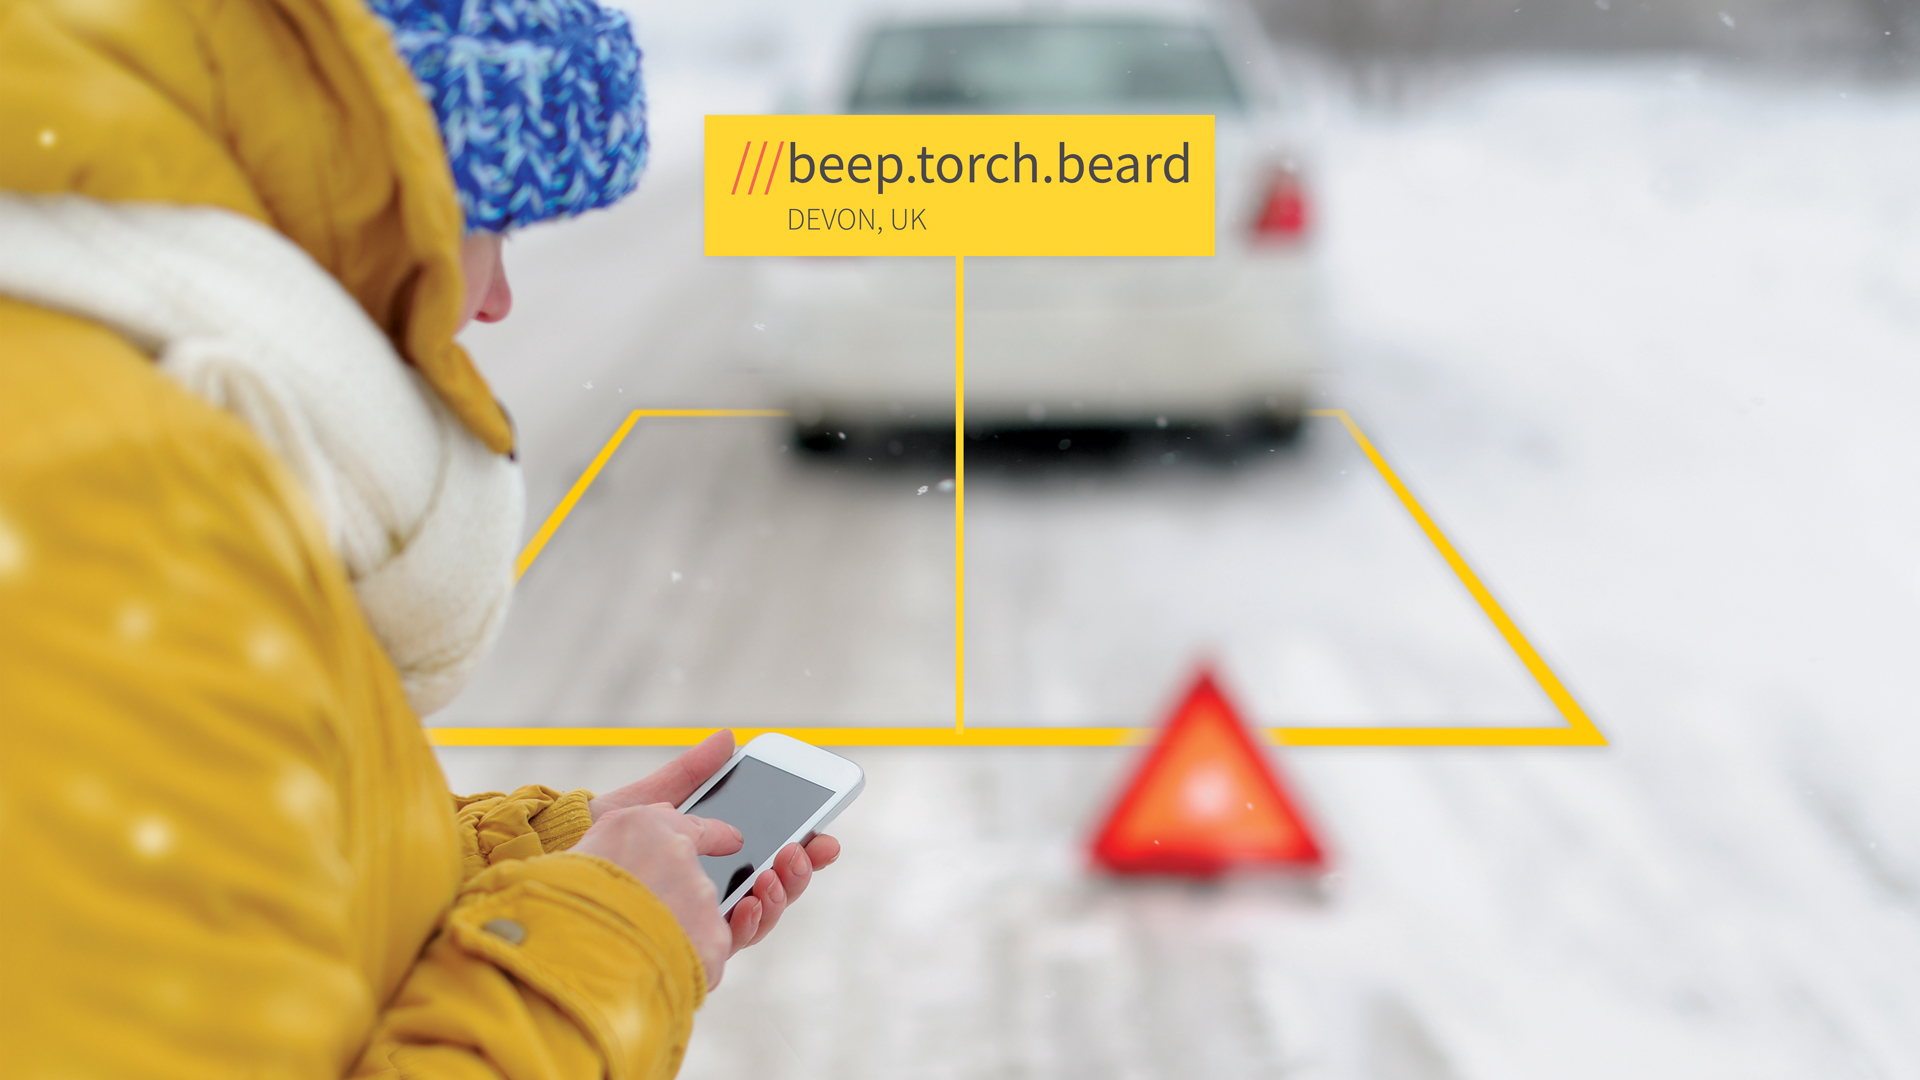 Snowy background with a car at 3 words address Beep.Torch.Beard used by the AA